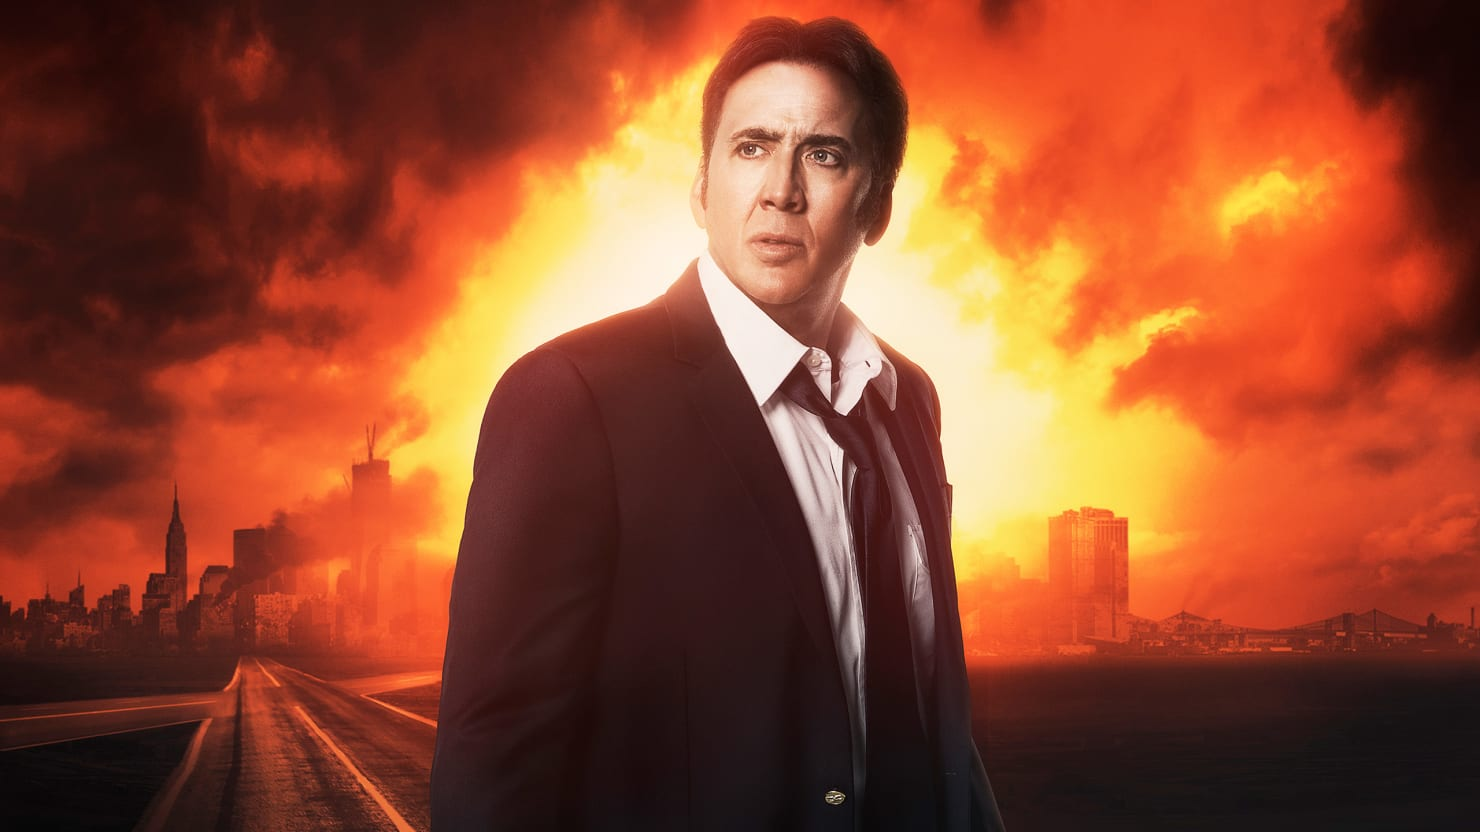 'Left Behind' Review: Nicolas Cage's Bible Movie Is God-Awful